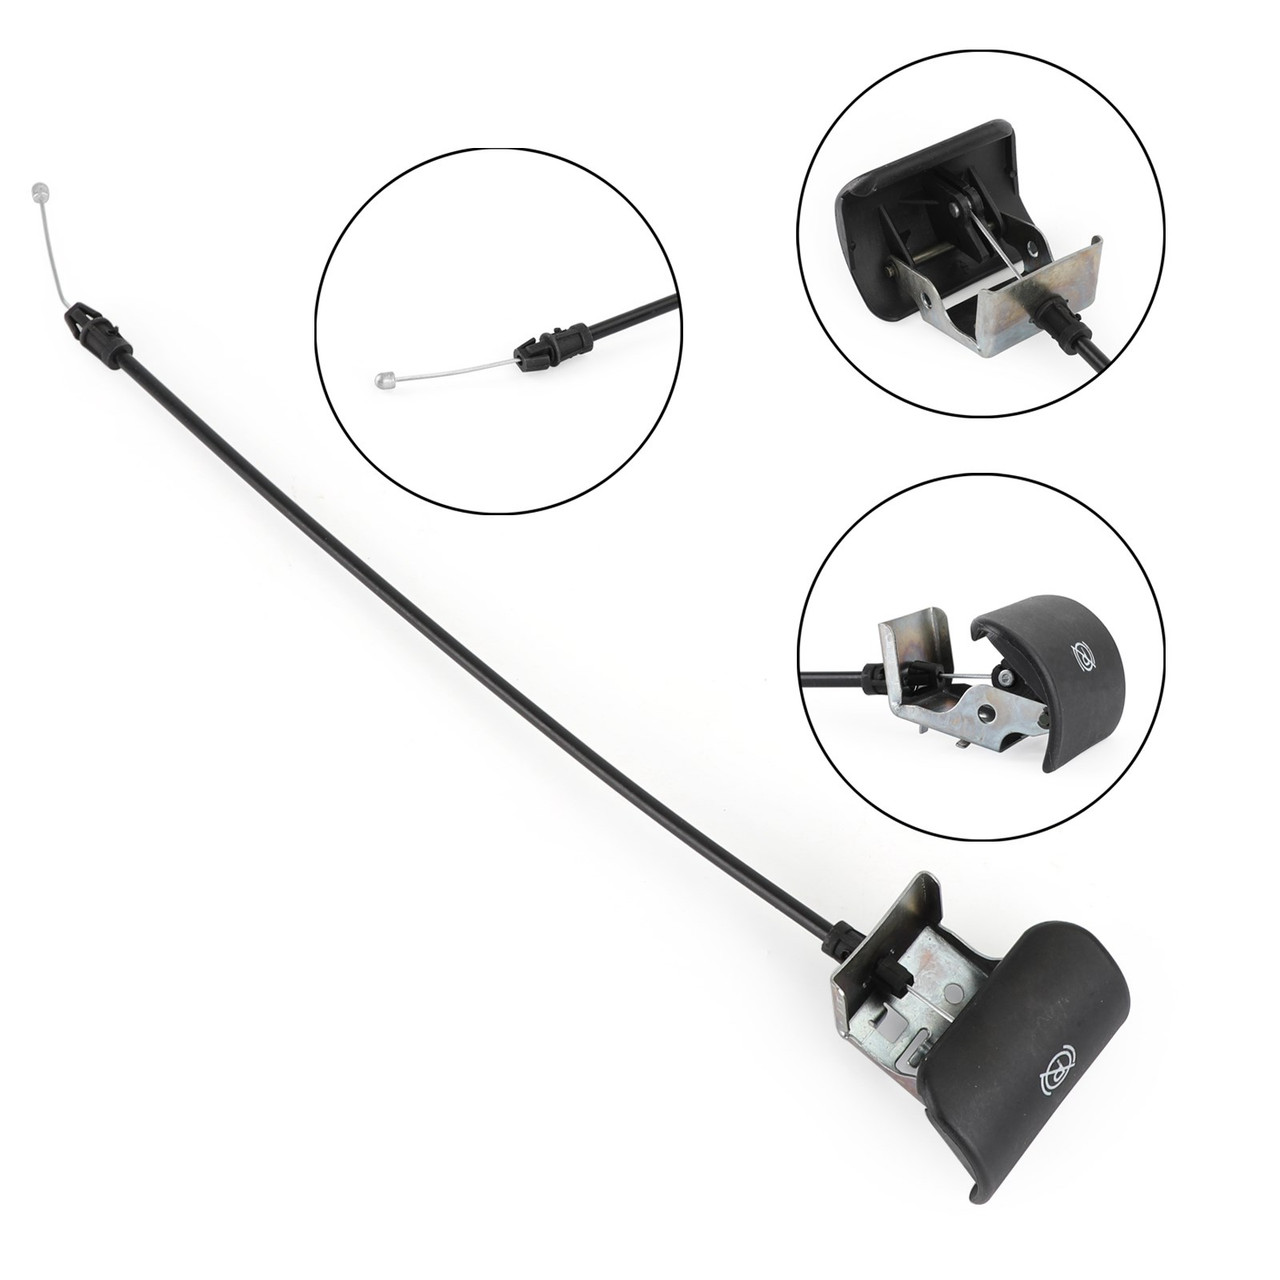 Emergency Parking Brake Release Pull Handle Cable Fits for 2003-2006 Chevrolet Avalanche 1500 03-06 Suburban 2500 01-06 Tahoe 00-06 99-07 Yukon 00-06 Black